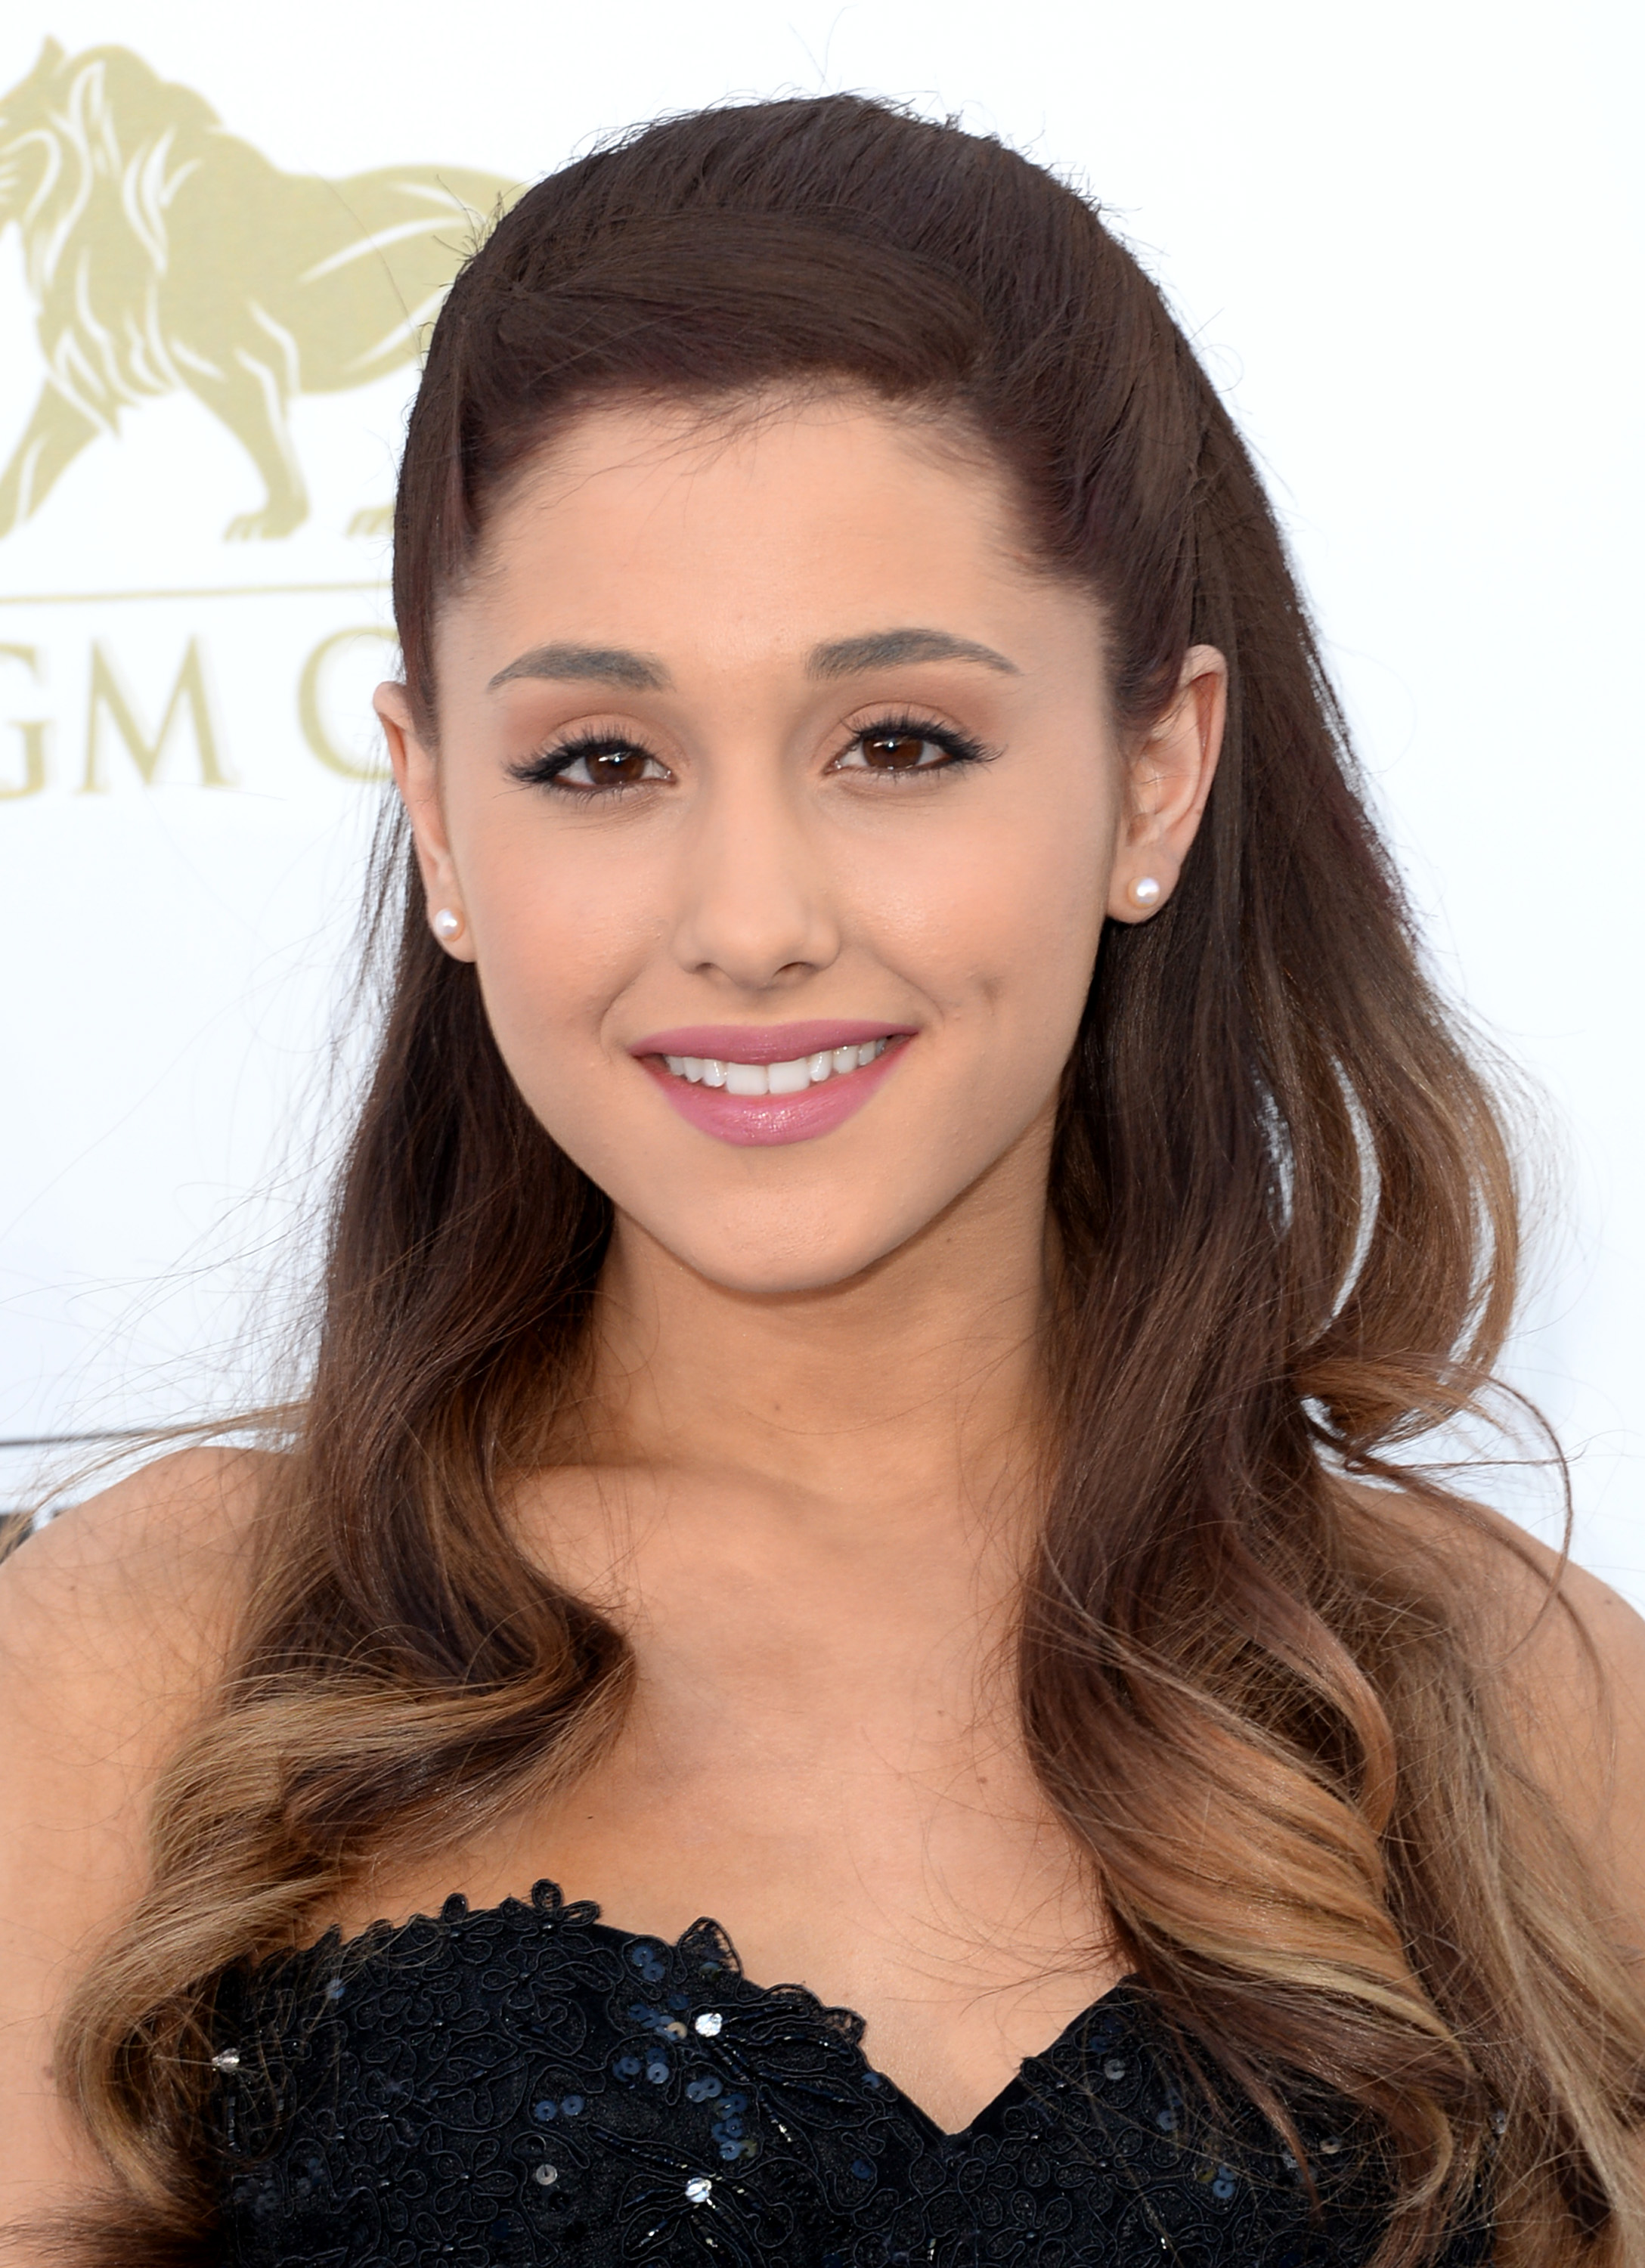 Ariana Grande Hd Desktop Wallpapers Download